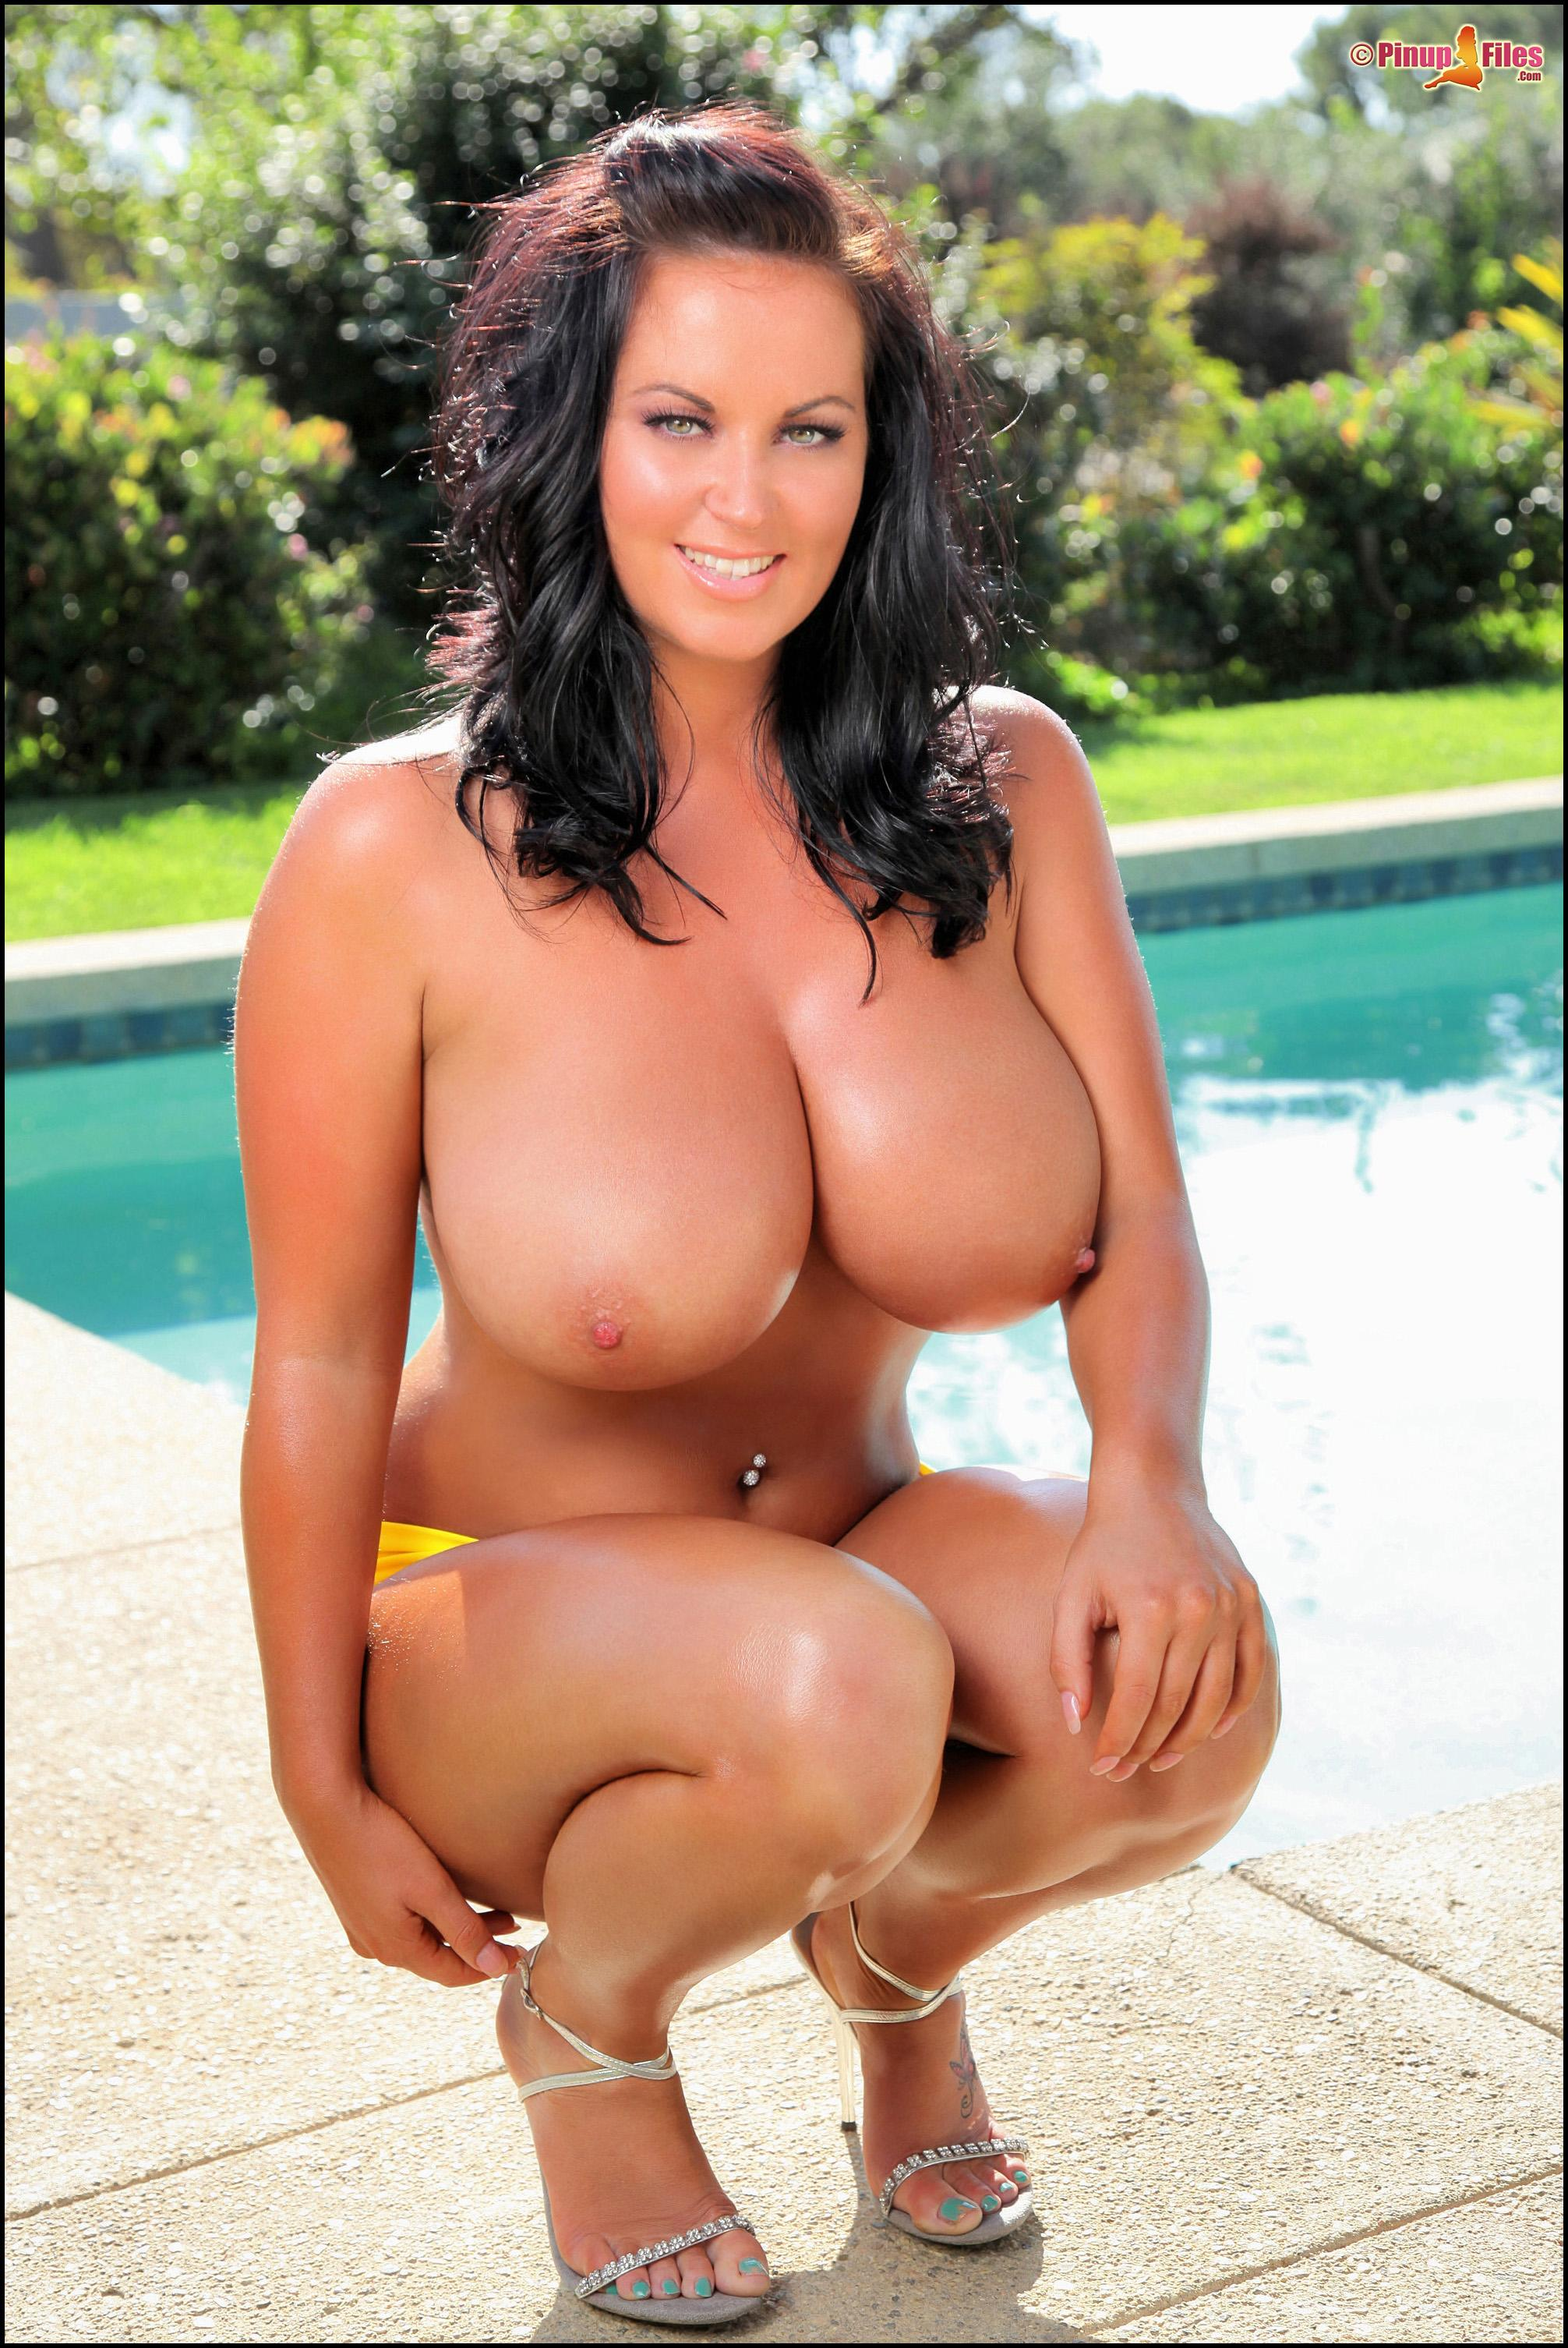 My Boob Site Big Tits Blog » Blog Archive » Confessions Of ...